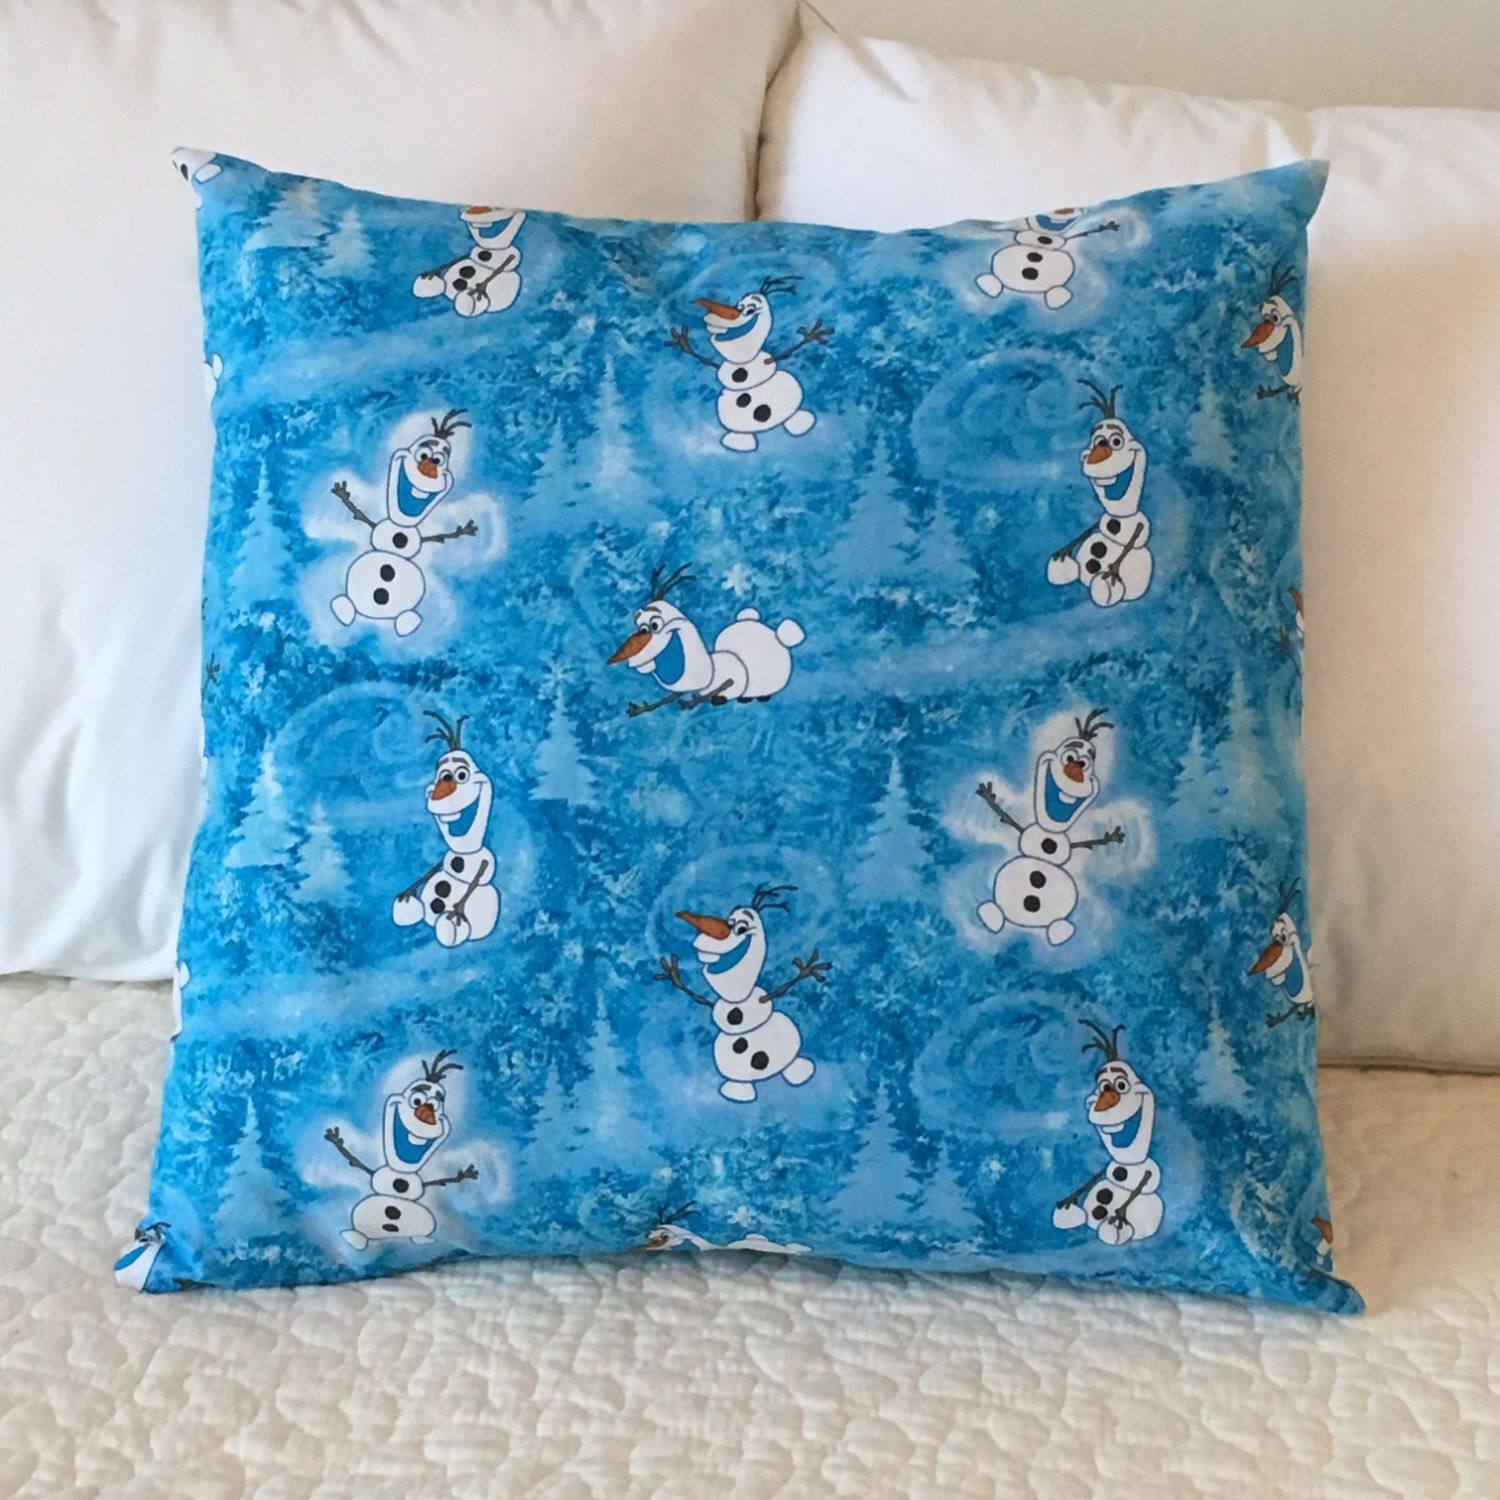 Olaf Pillow Cover - Frozen Pillow - Swappillow Covers - Holiday Gift - Envelope Closure - Decorative Pillow Cover - 16x16 - Snowman - Blue by KathyRyanDesigns on Etsy